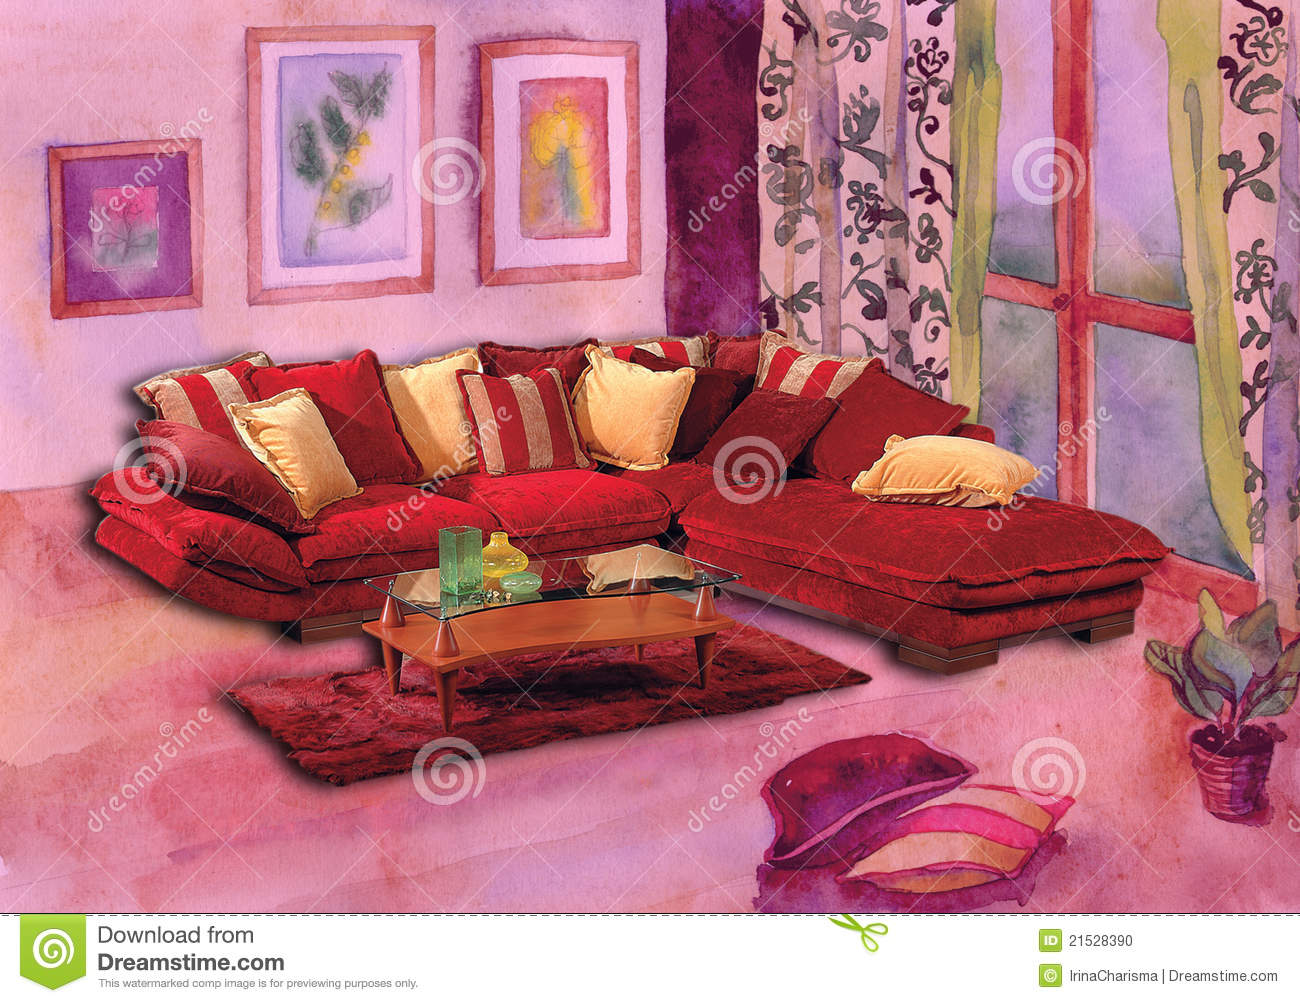 oriental style sofa stock photo image 21528390. Black Bedroom Furniture Sets. Home Design Ideas